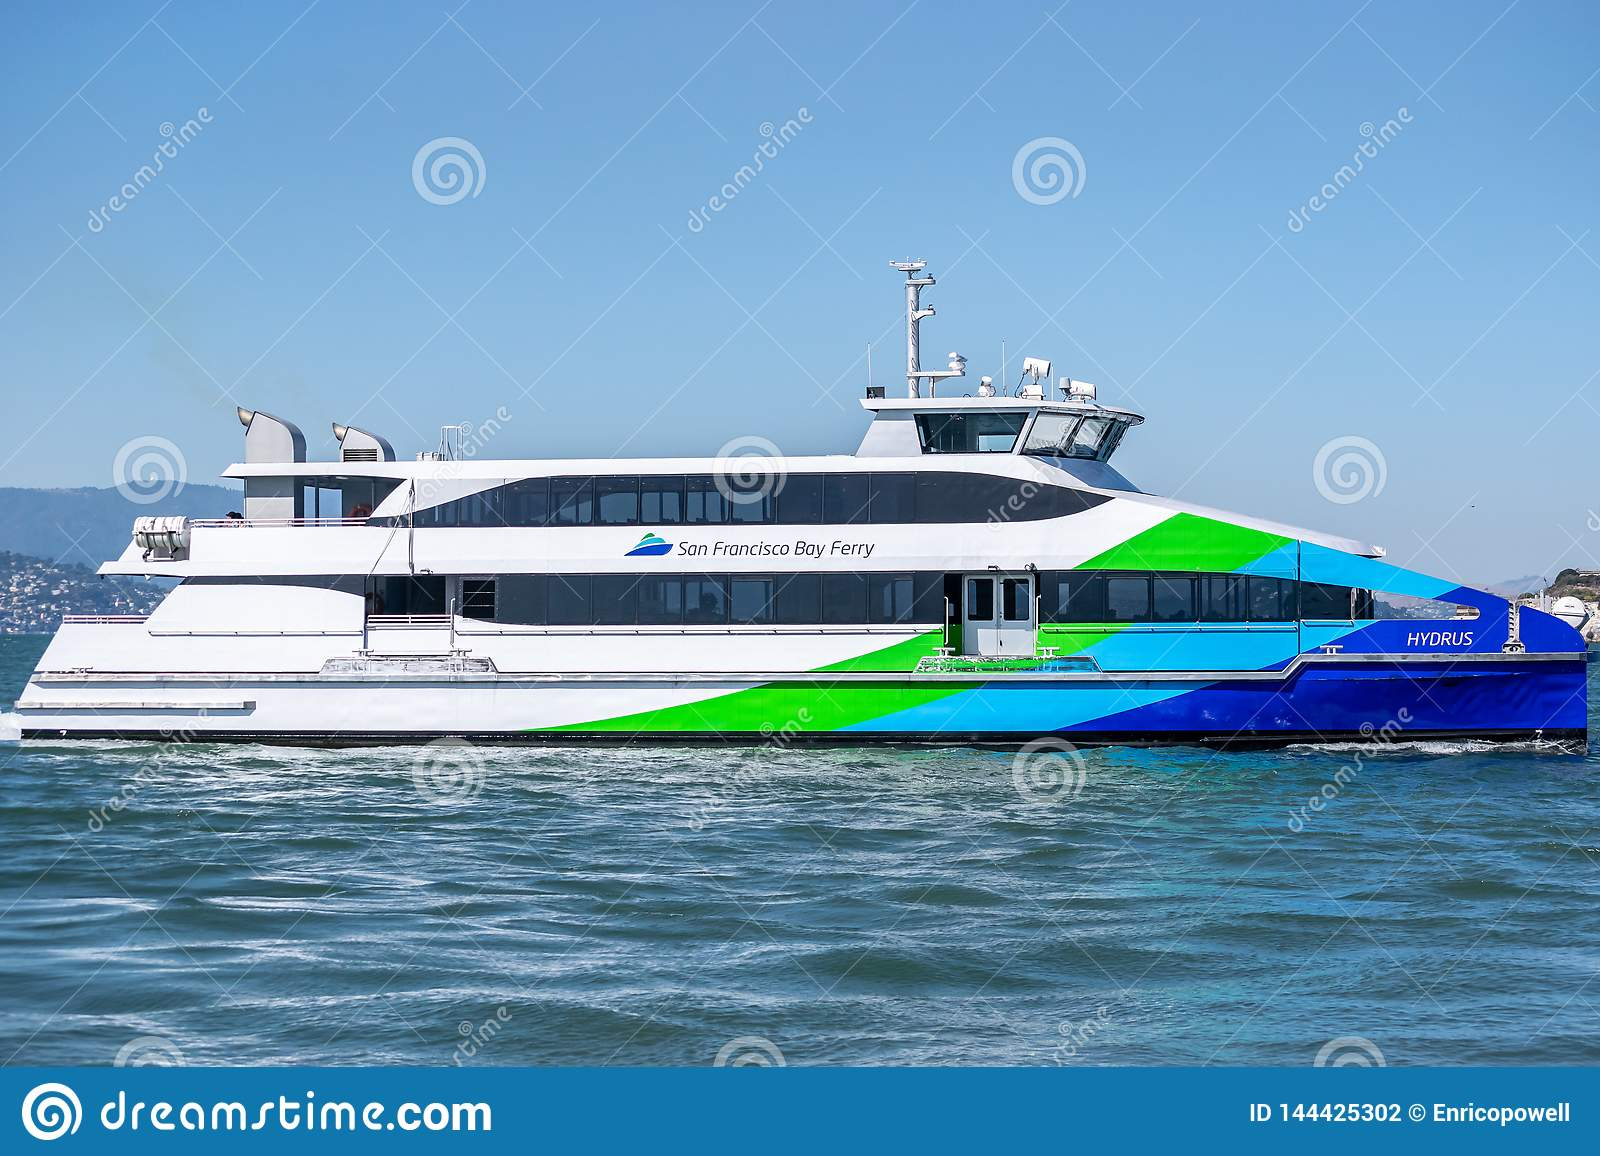 The colorful San Francisco Bay Ferry at Pier 39